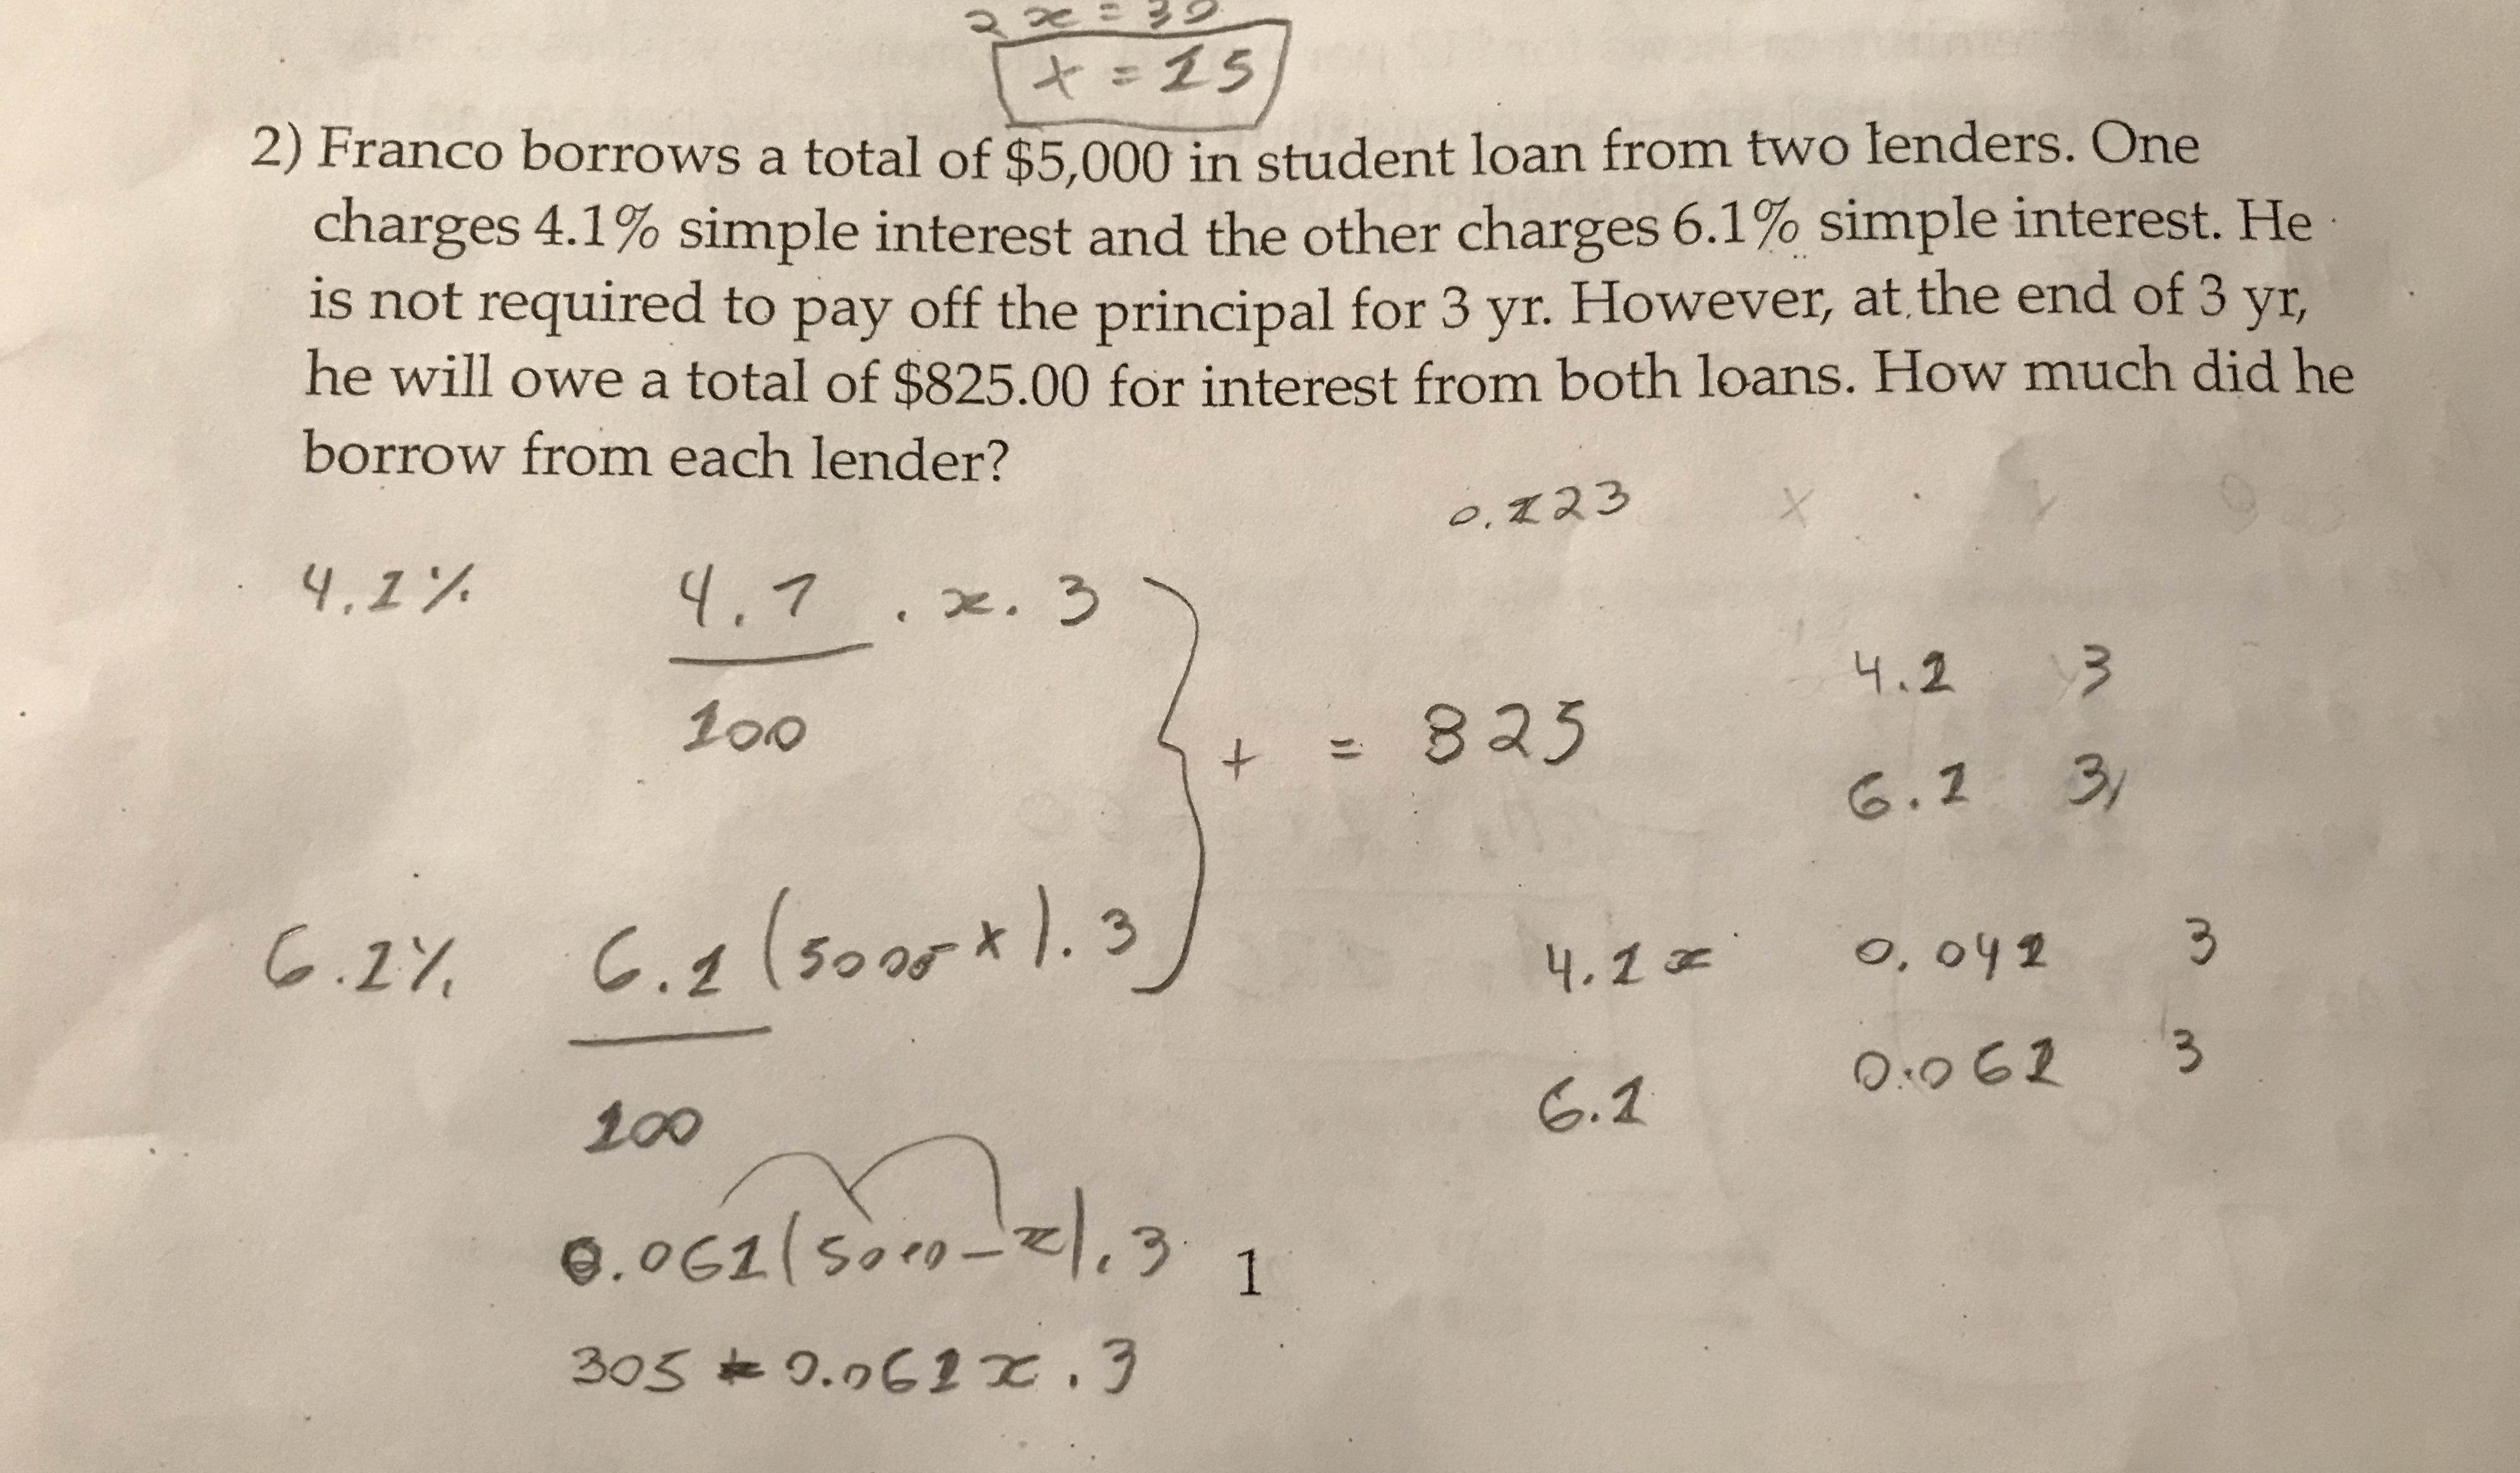 15 2) Franco borrows a total of $5.000 in student loan from two lenders. One charges 4.1% simple interest and the other charges 6.1% simple interest. He is not required to pay off the principal for 3 yr. However, at the end of 3 yr, he will owe a total of $825.00 for interest from both loans. How much did he borrow from each lender? 0.723 4,1% 4,7.x. 3 4.2 100 825 6.2 3 C.1 (50or). 3 C.27 o, 042 4.2 Oo62 S.2 100 1 12-005)7900 305 0.061.3 3 il